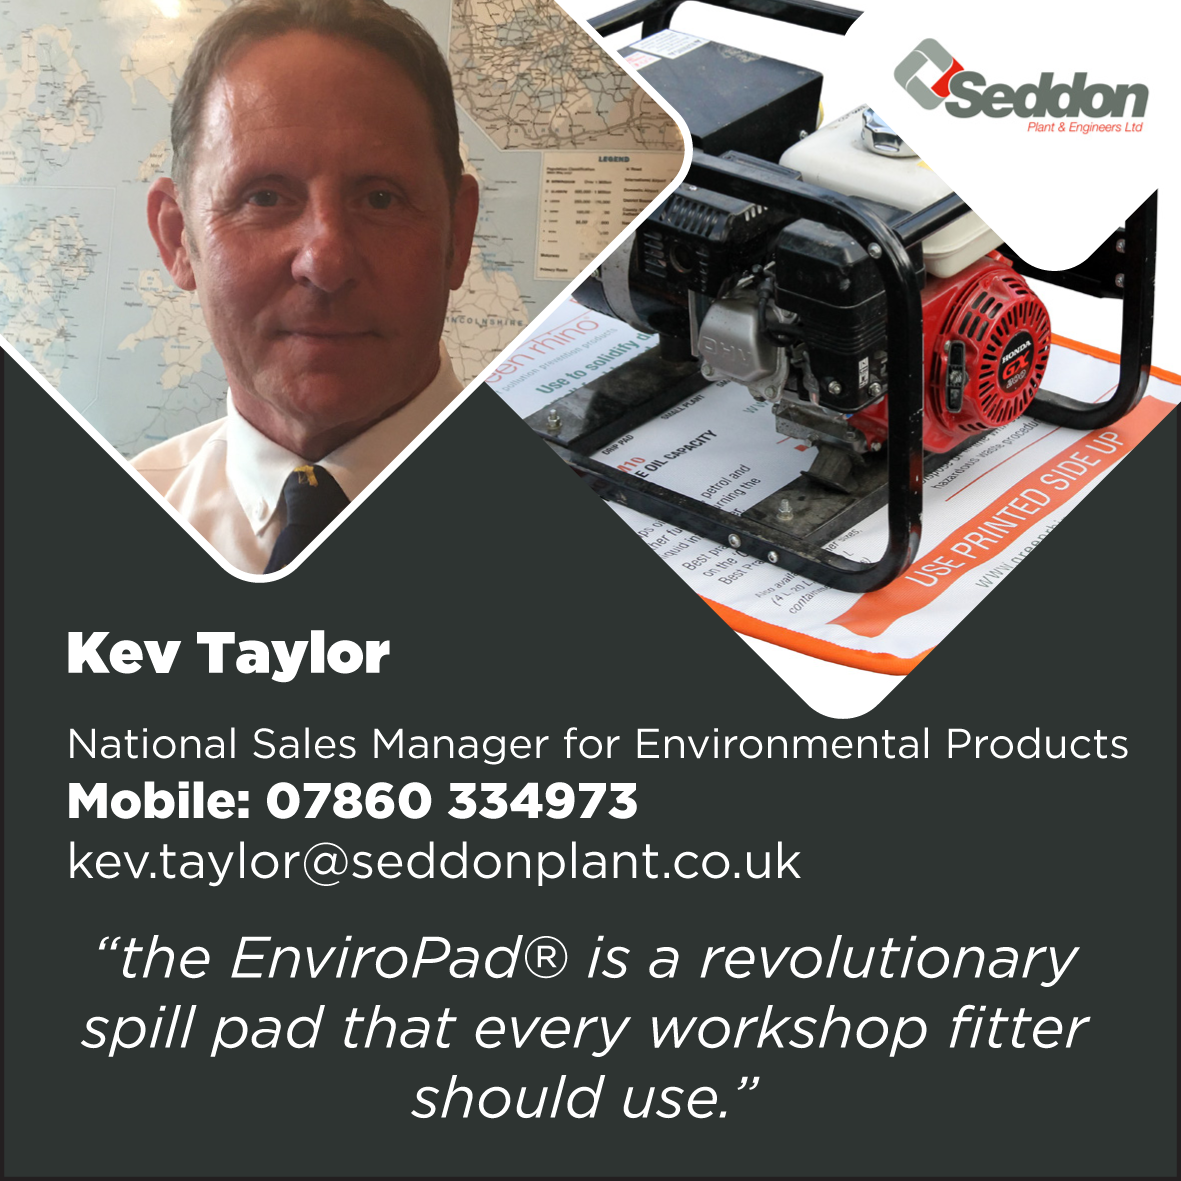 Kev Taylor spearheads EnviroPad®